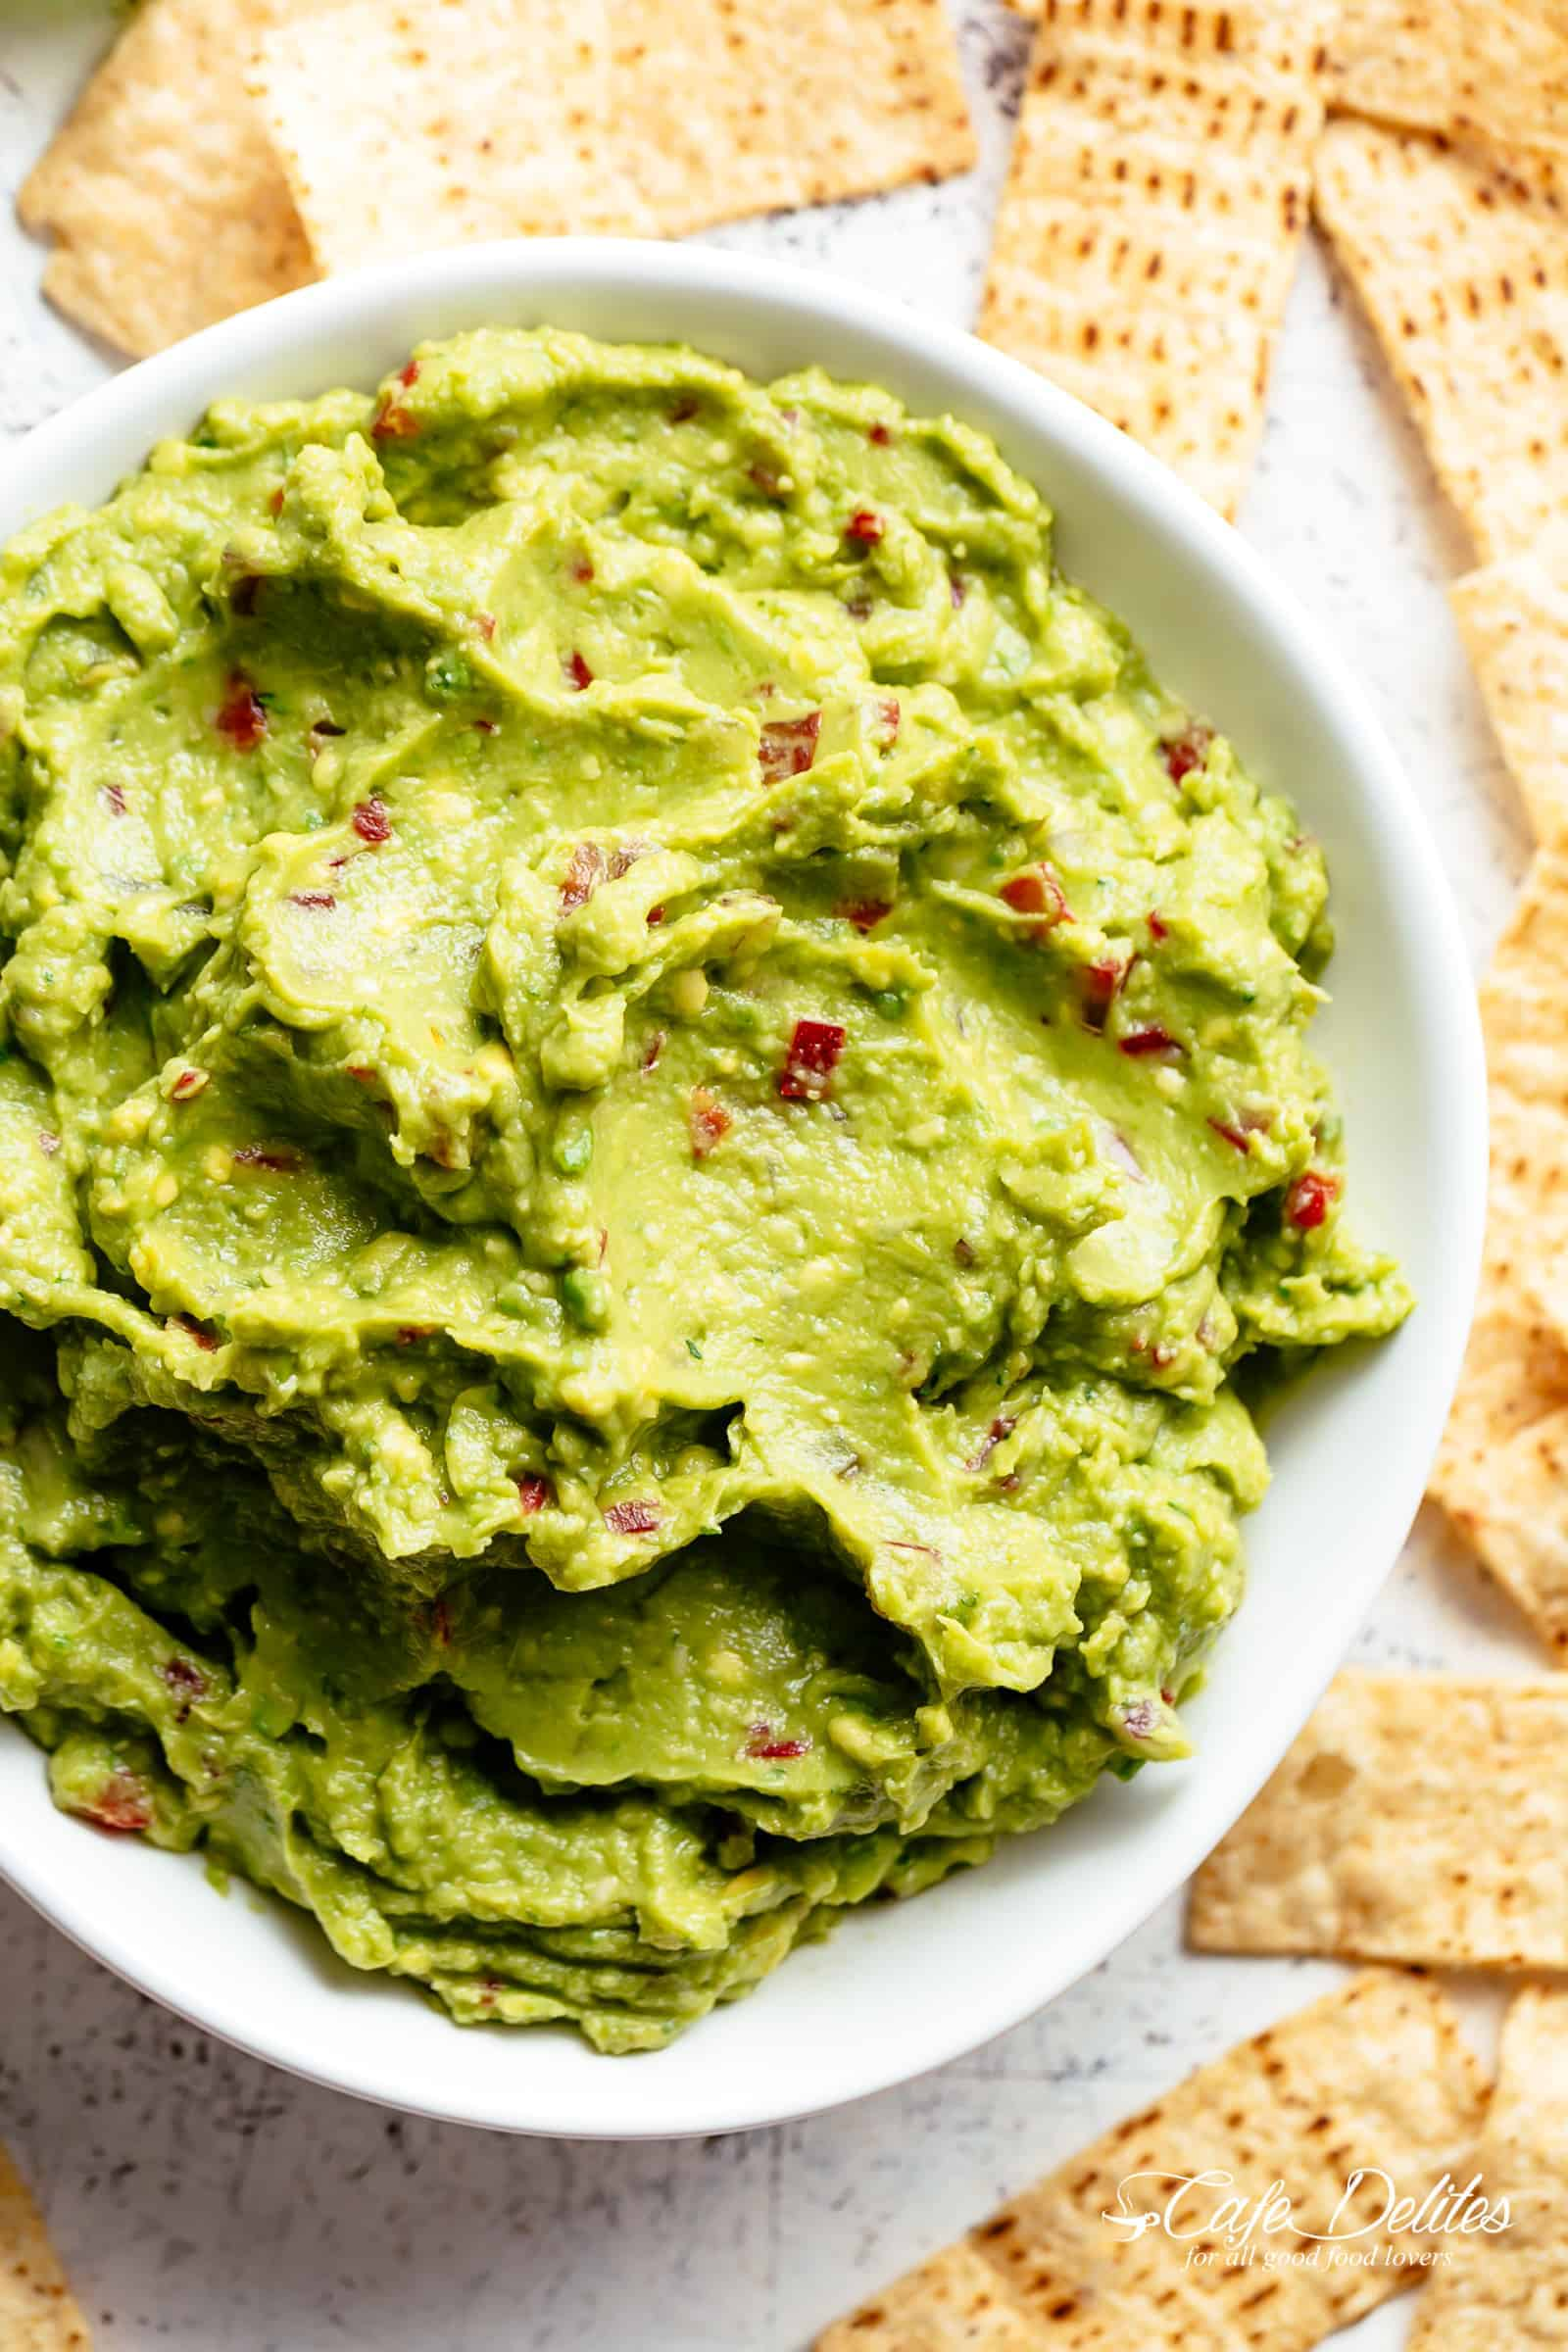 From Our Schools Kitchen to Yours  - Organic Guacamole, Grocery, Anneliese Schools - LIESAS